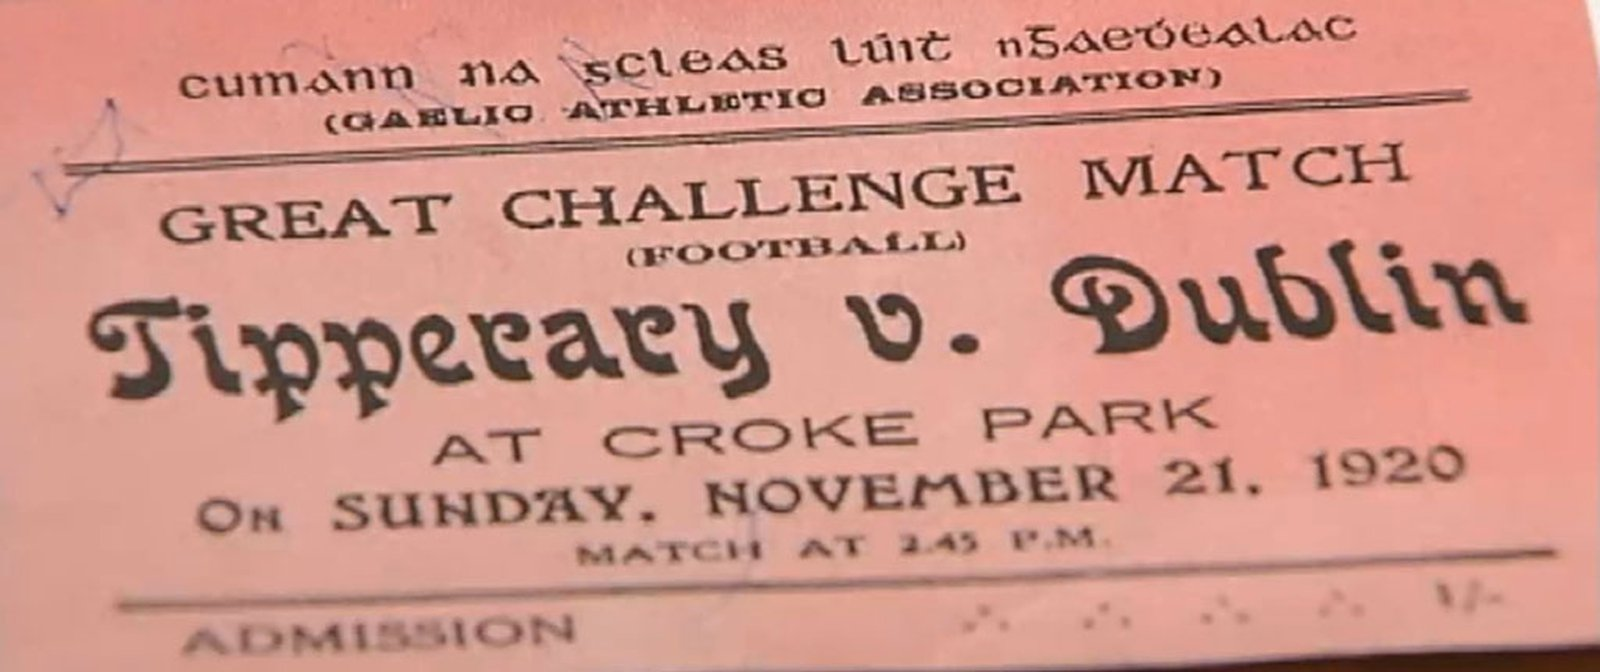 Image - A ticket for the fatal match